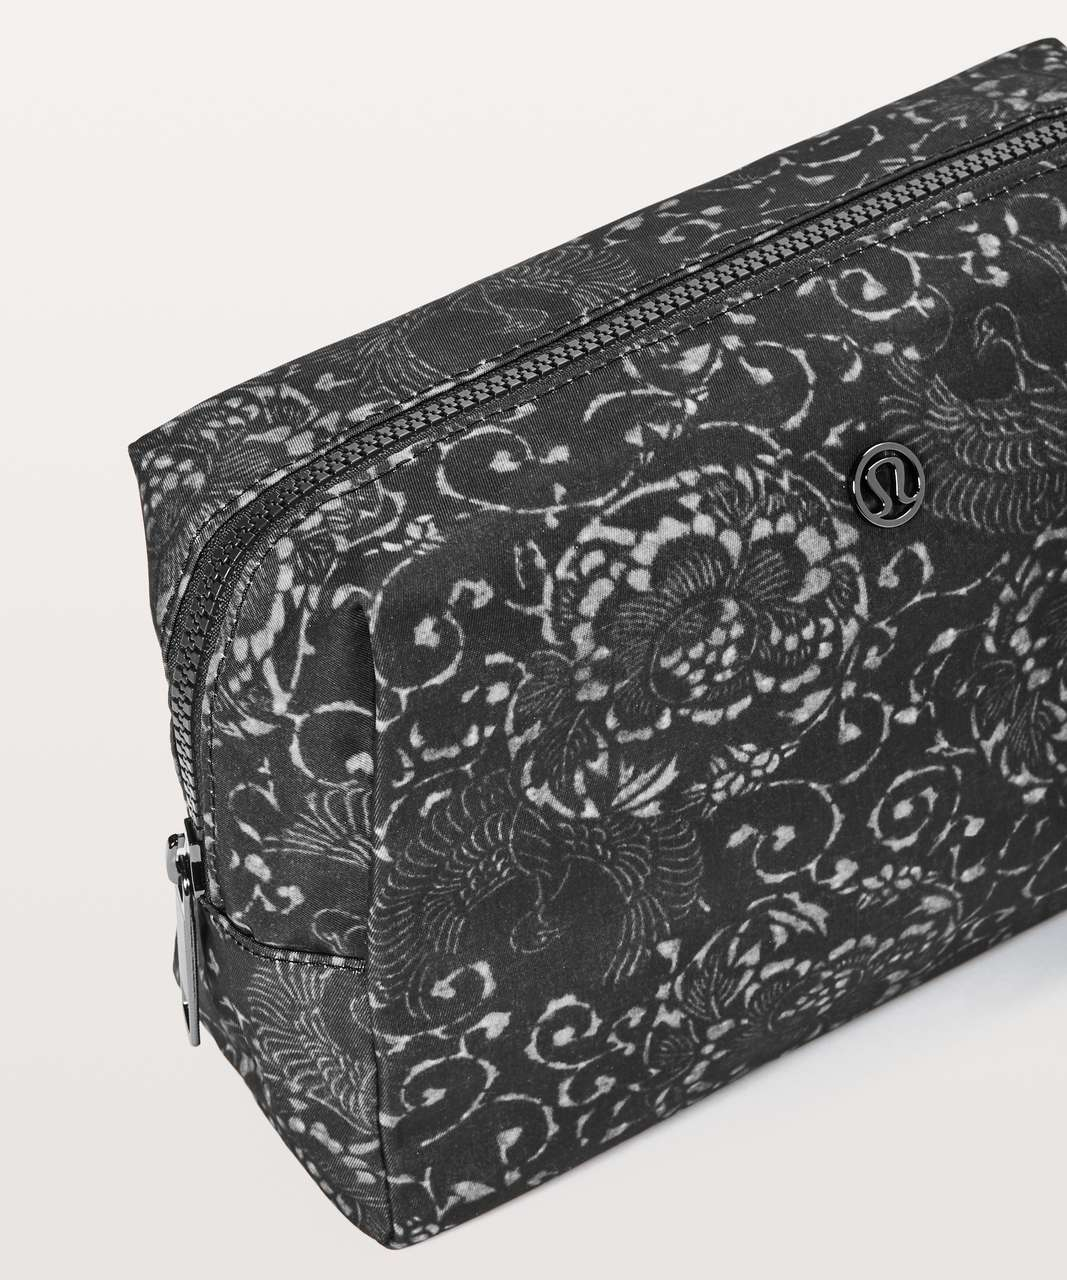 Lululemon All Your Small Things Pouch *4L - Mini Motif Grey Black